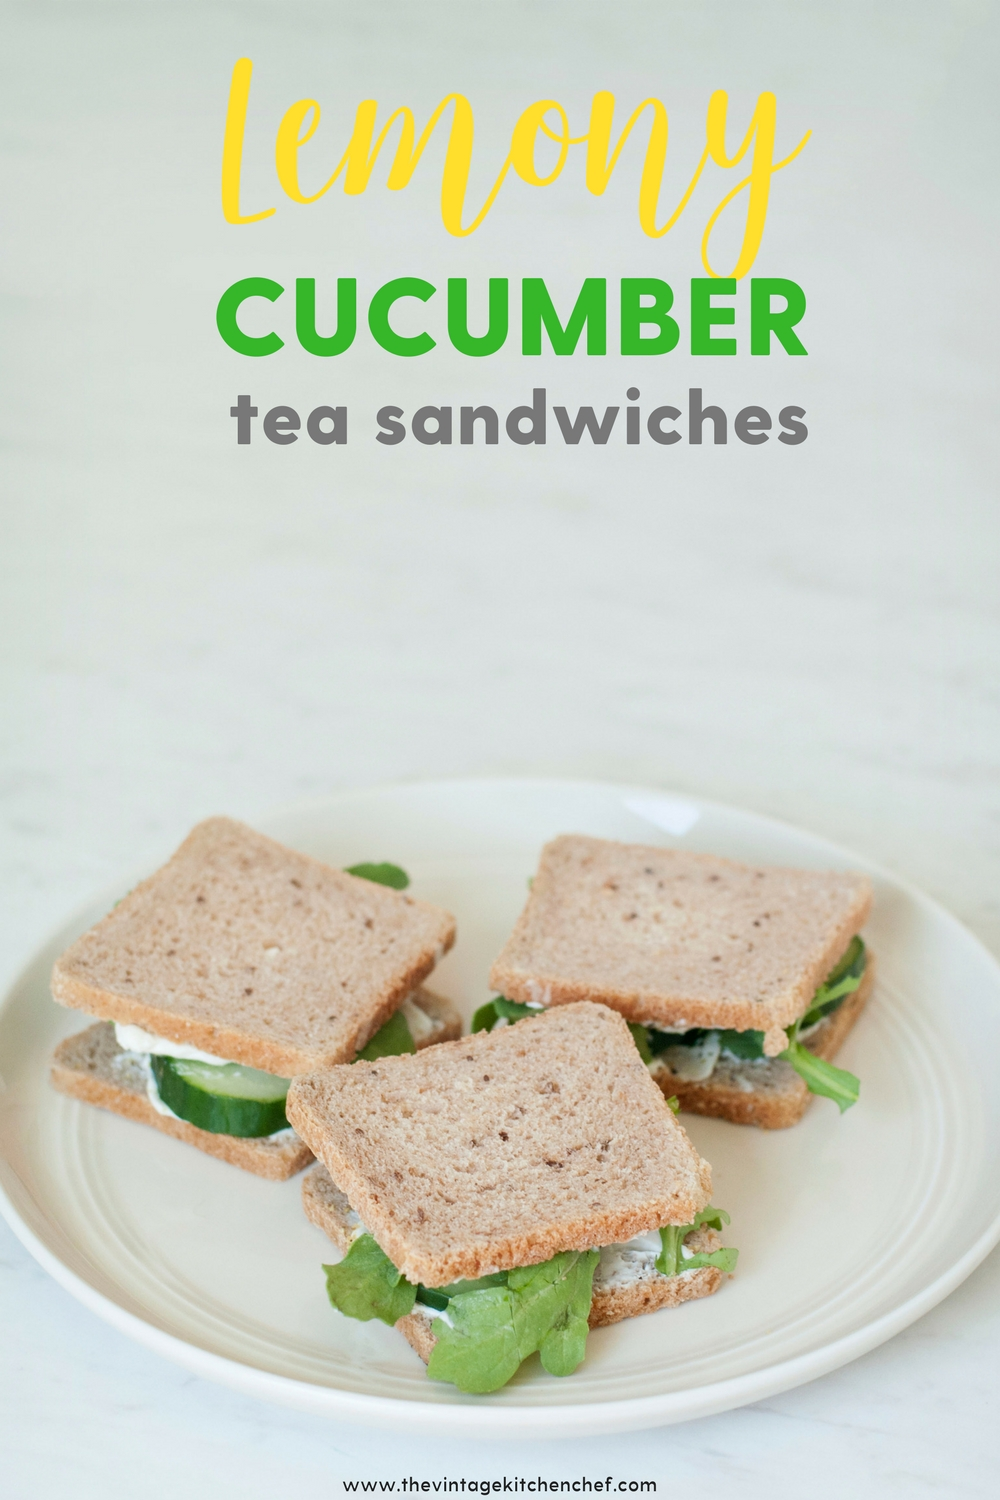 Lemony Cucumber Tea Sandwiches are delightful and incredibly easy. They are the perfect addition for tea time or anytime!